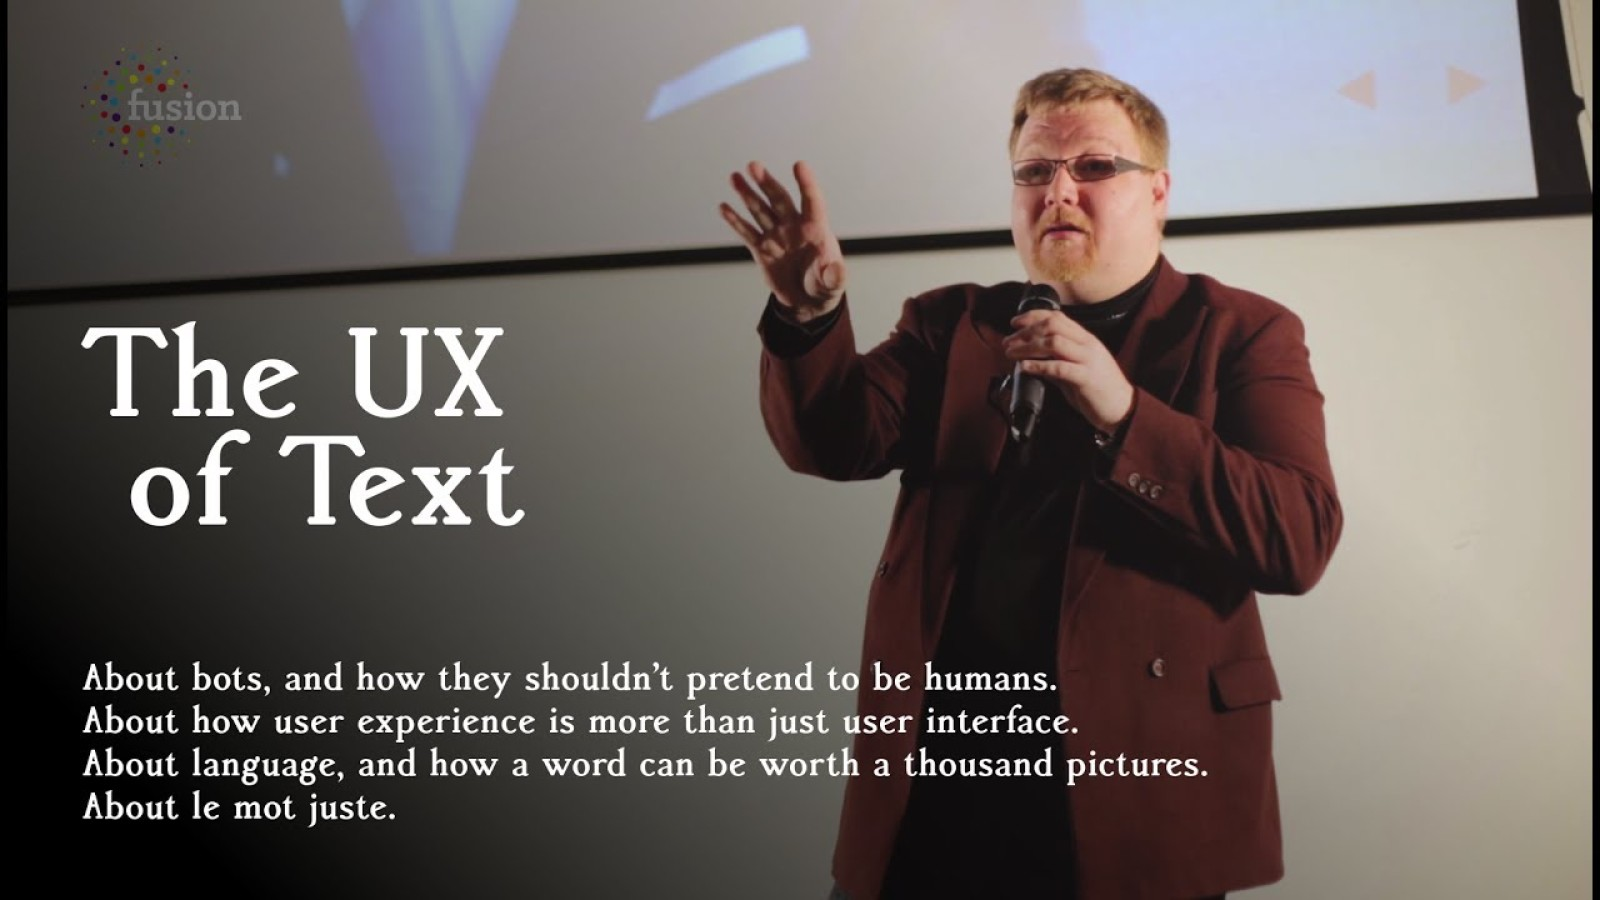 The UX of Text